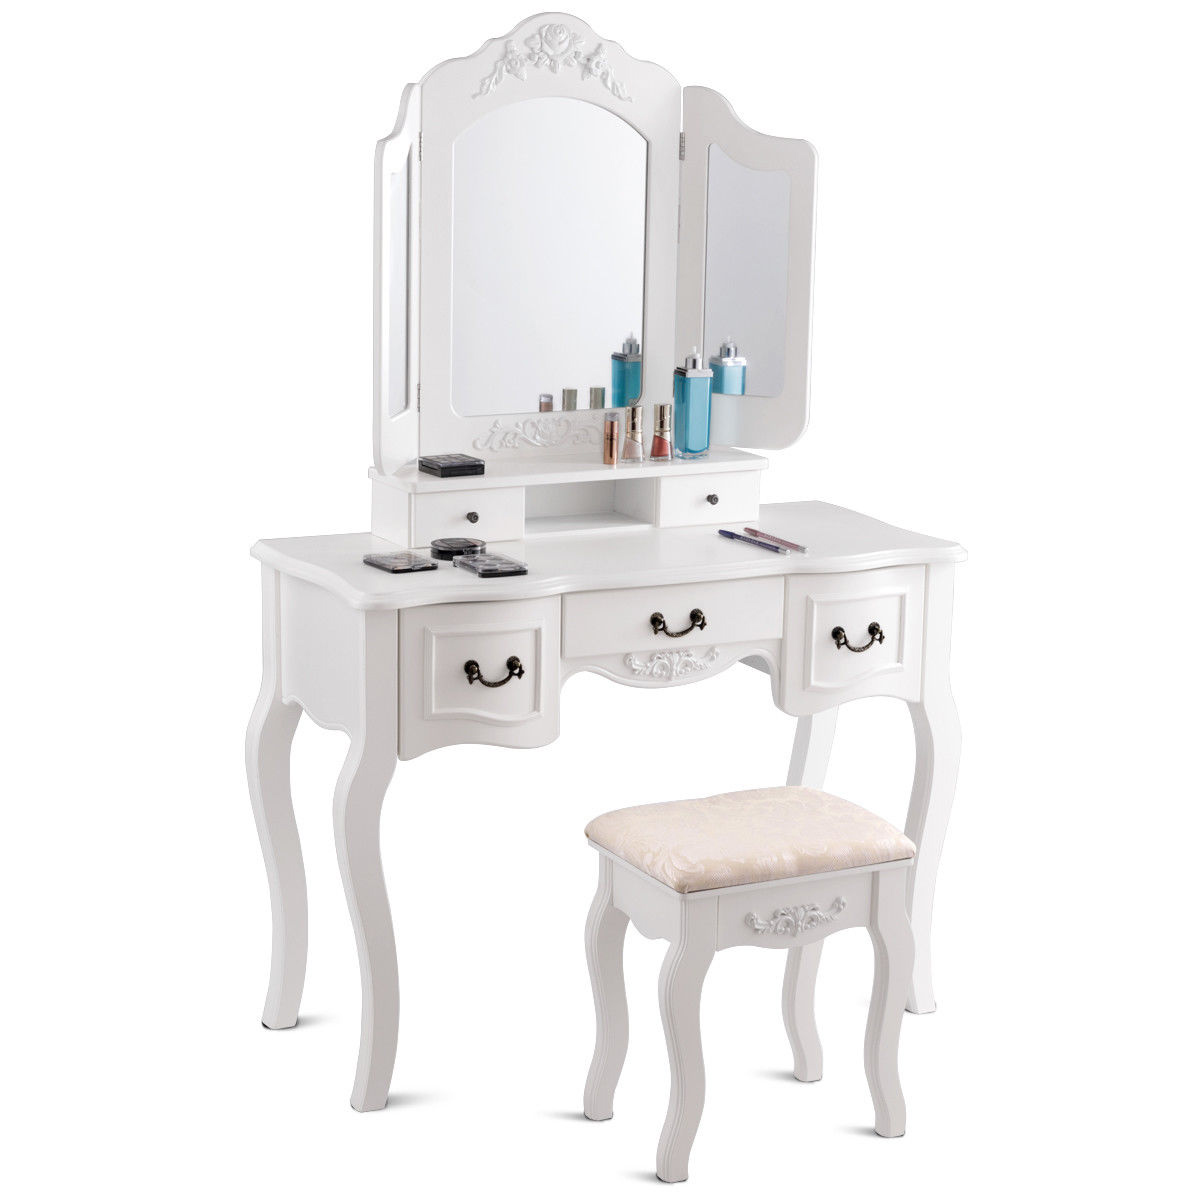 Outstanding White Tri Folding Mirror Wood Vanity Makeup Table Set With Squirreltailoven Fun Painted Chair Ideas Images Squirreltailovenorg